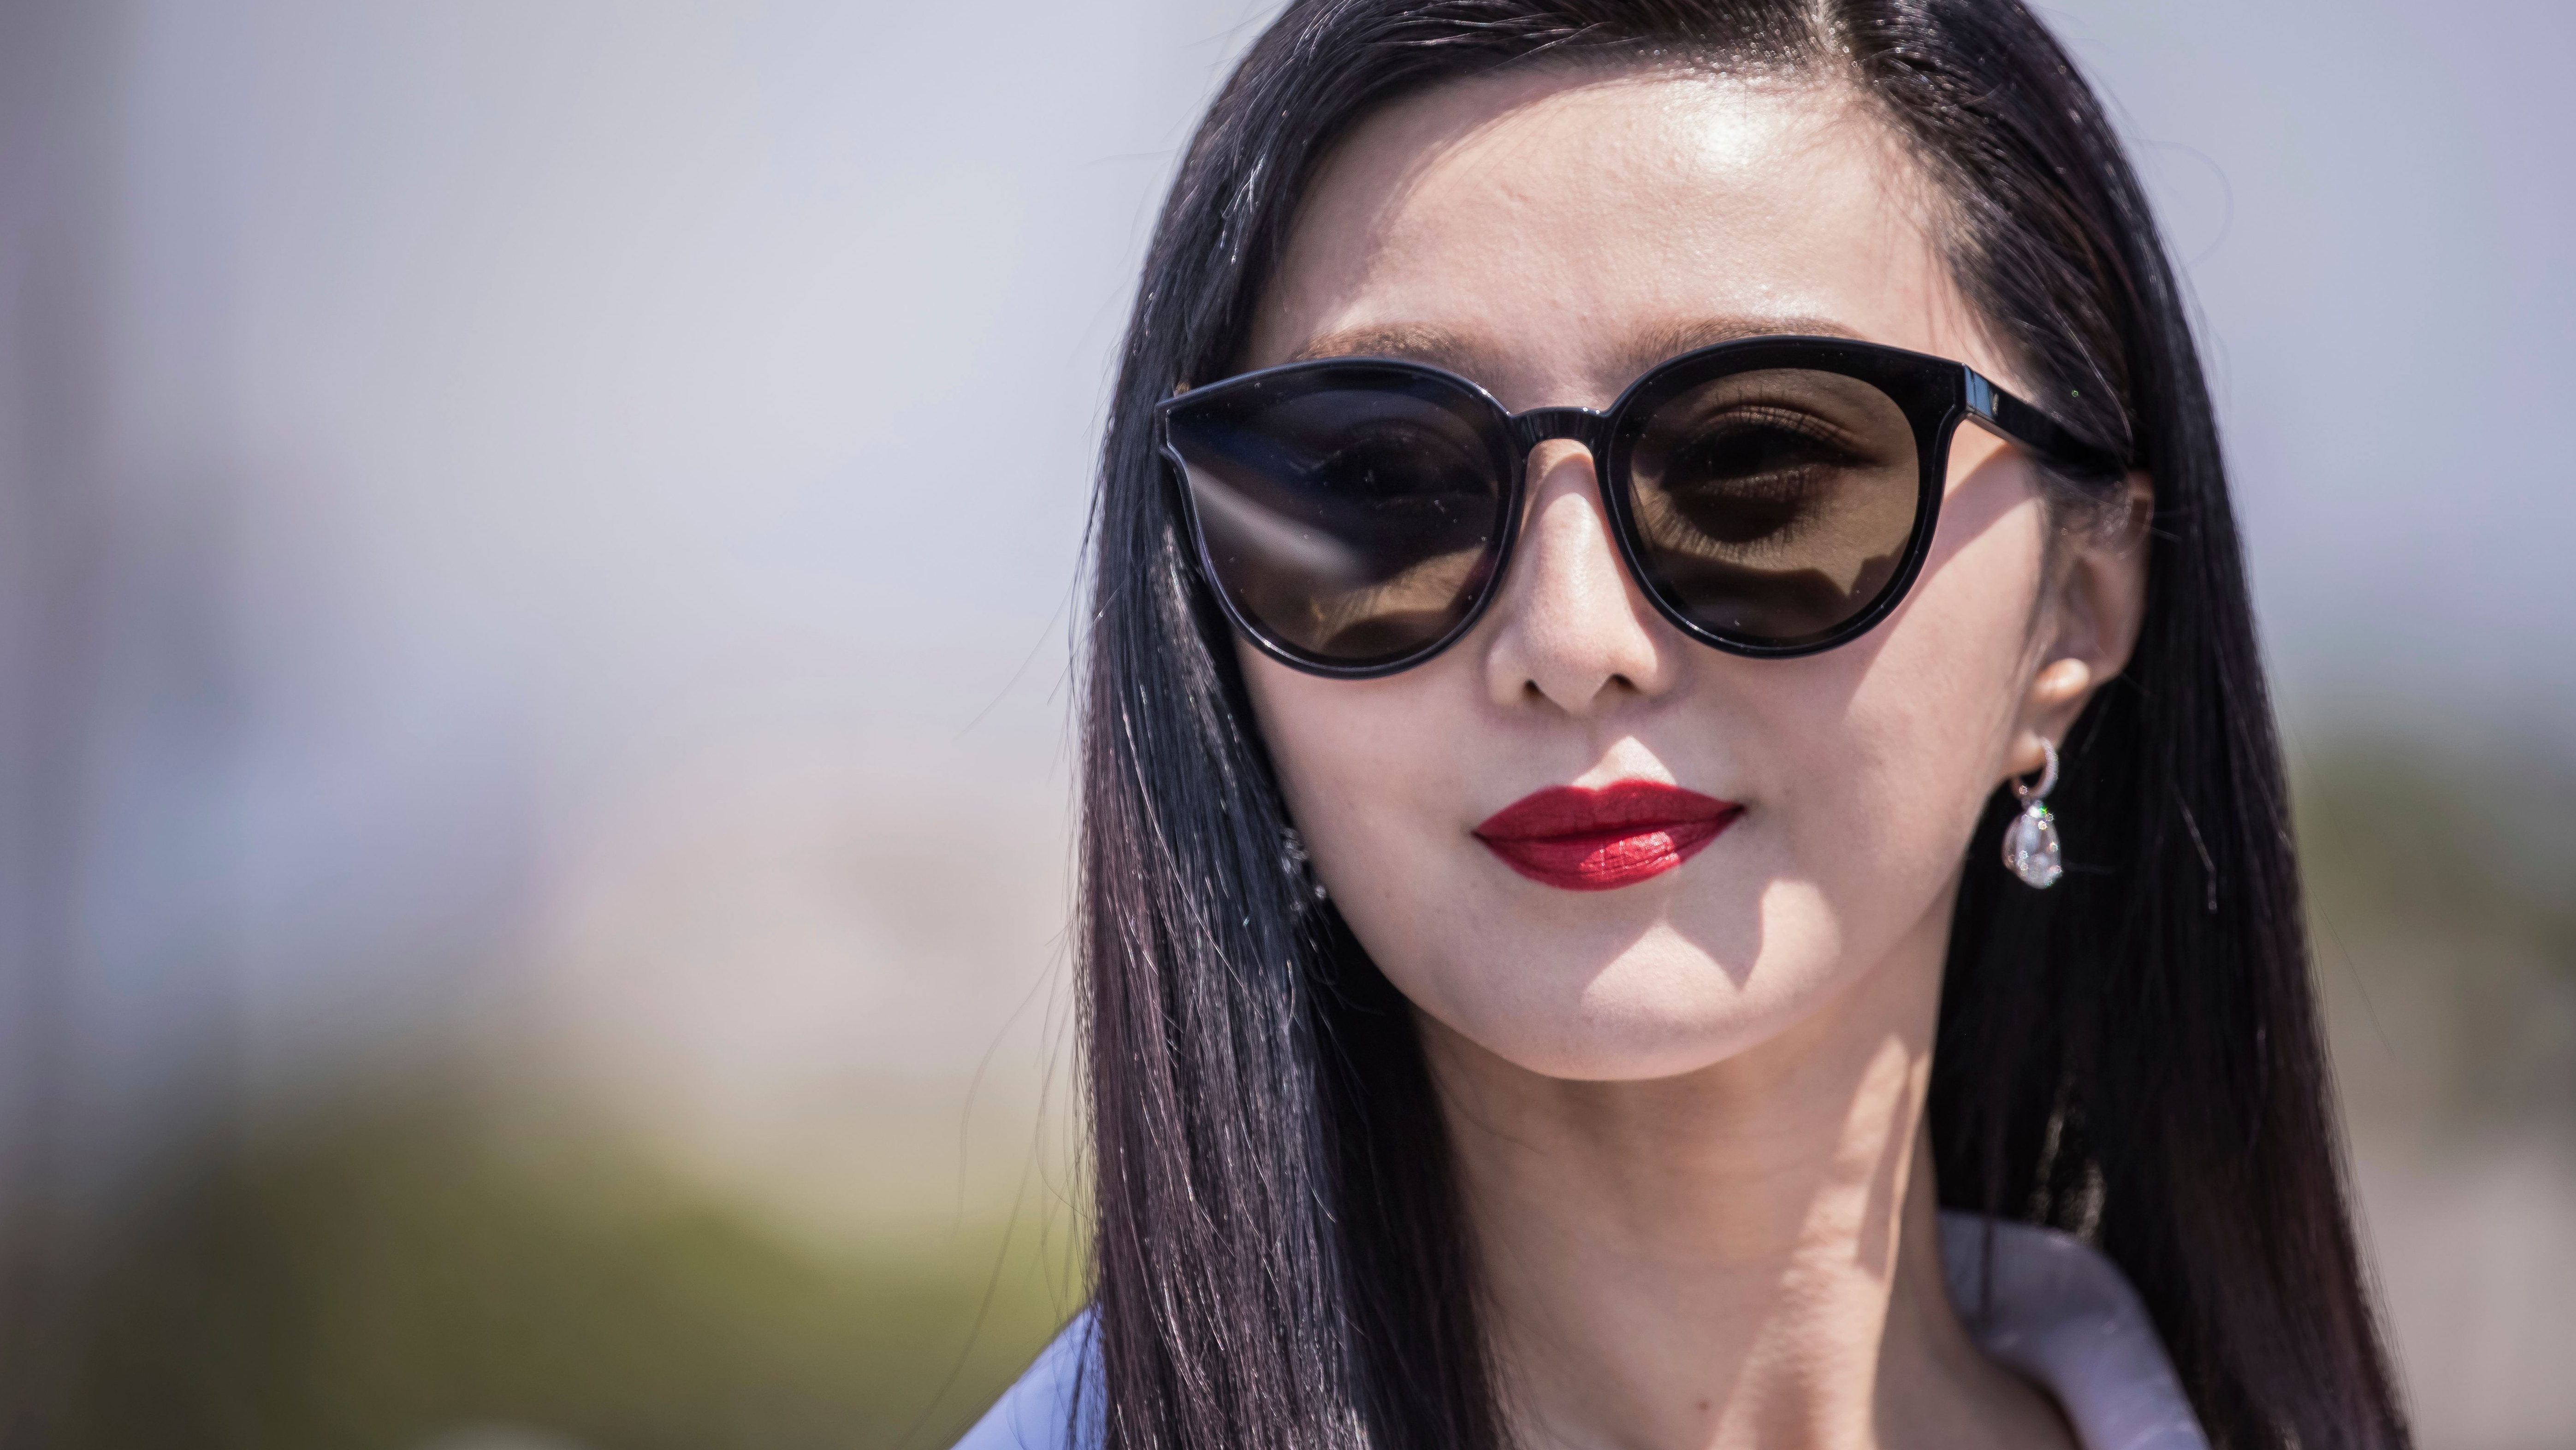 Actress Fan BingBing poses for photographers during a photo call for the film '355' at the 71st international film festival, Cannes, southern France, Thursday, May 10, 2018. (Photo by Vianney Le Caer/Invision/AP)